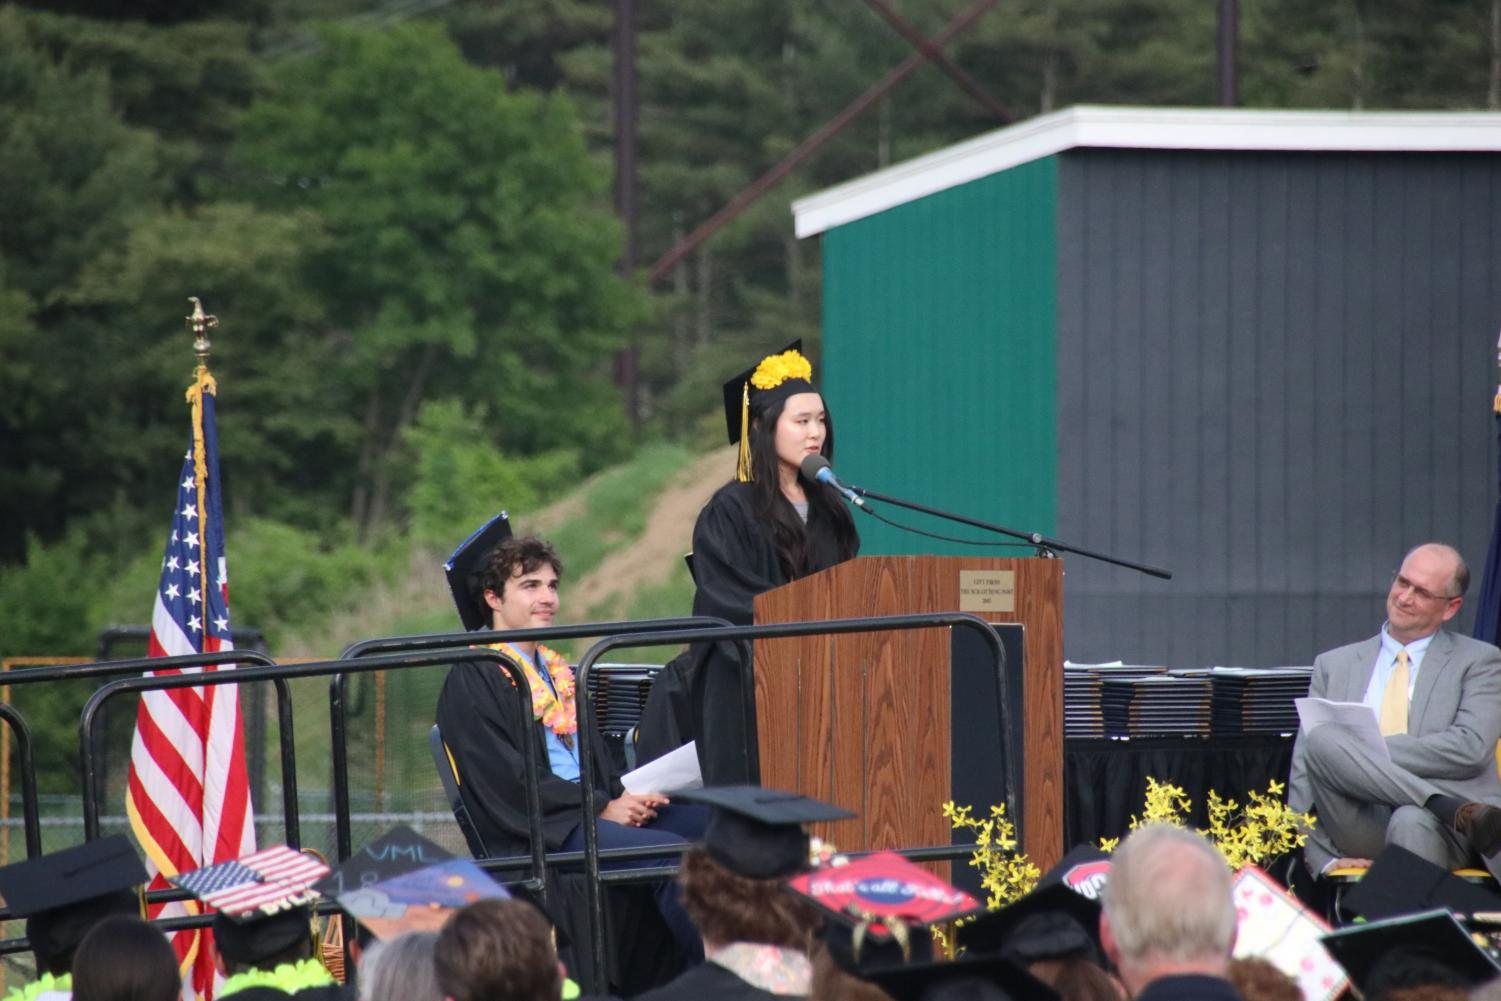 The+Valedictorian+of+the+Souhegan+Class+of+2018+was+Melody+Chen.